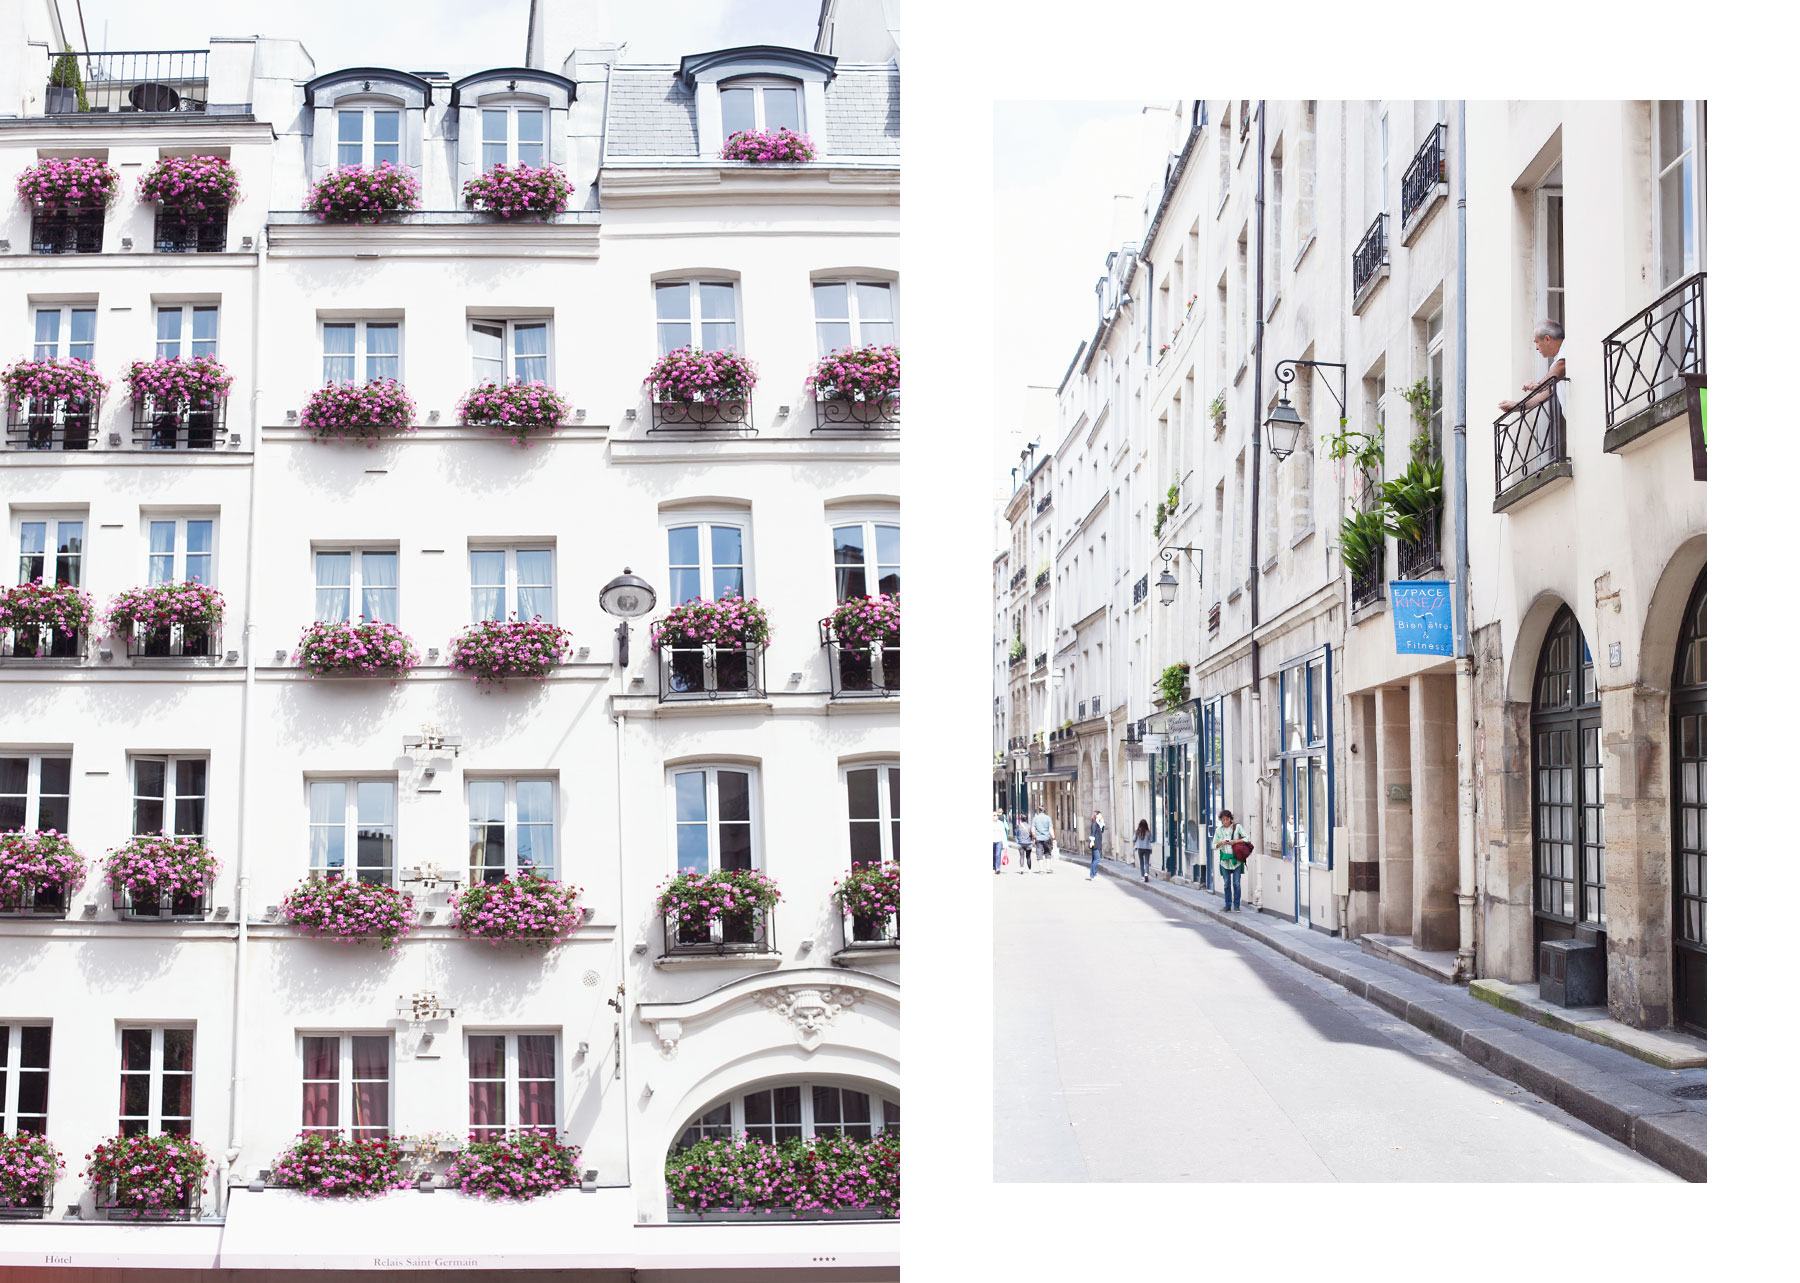 August in Paris by Carin Olsson (Paris in Four Months)